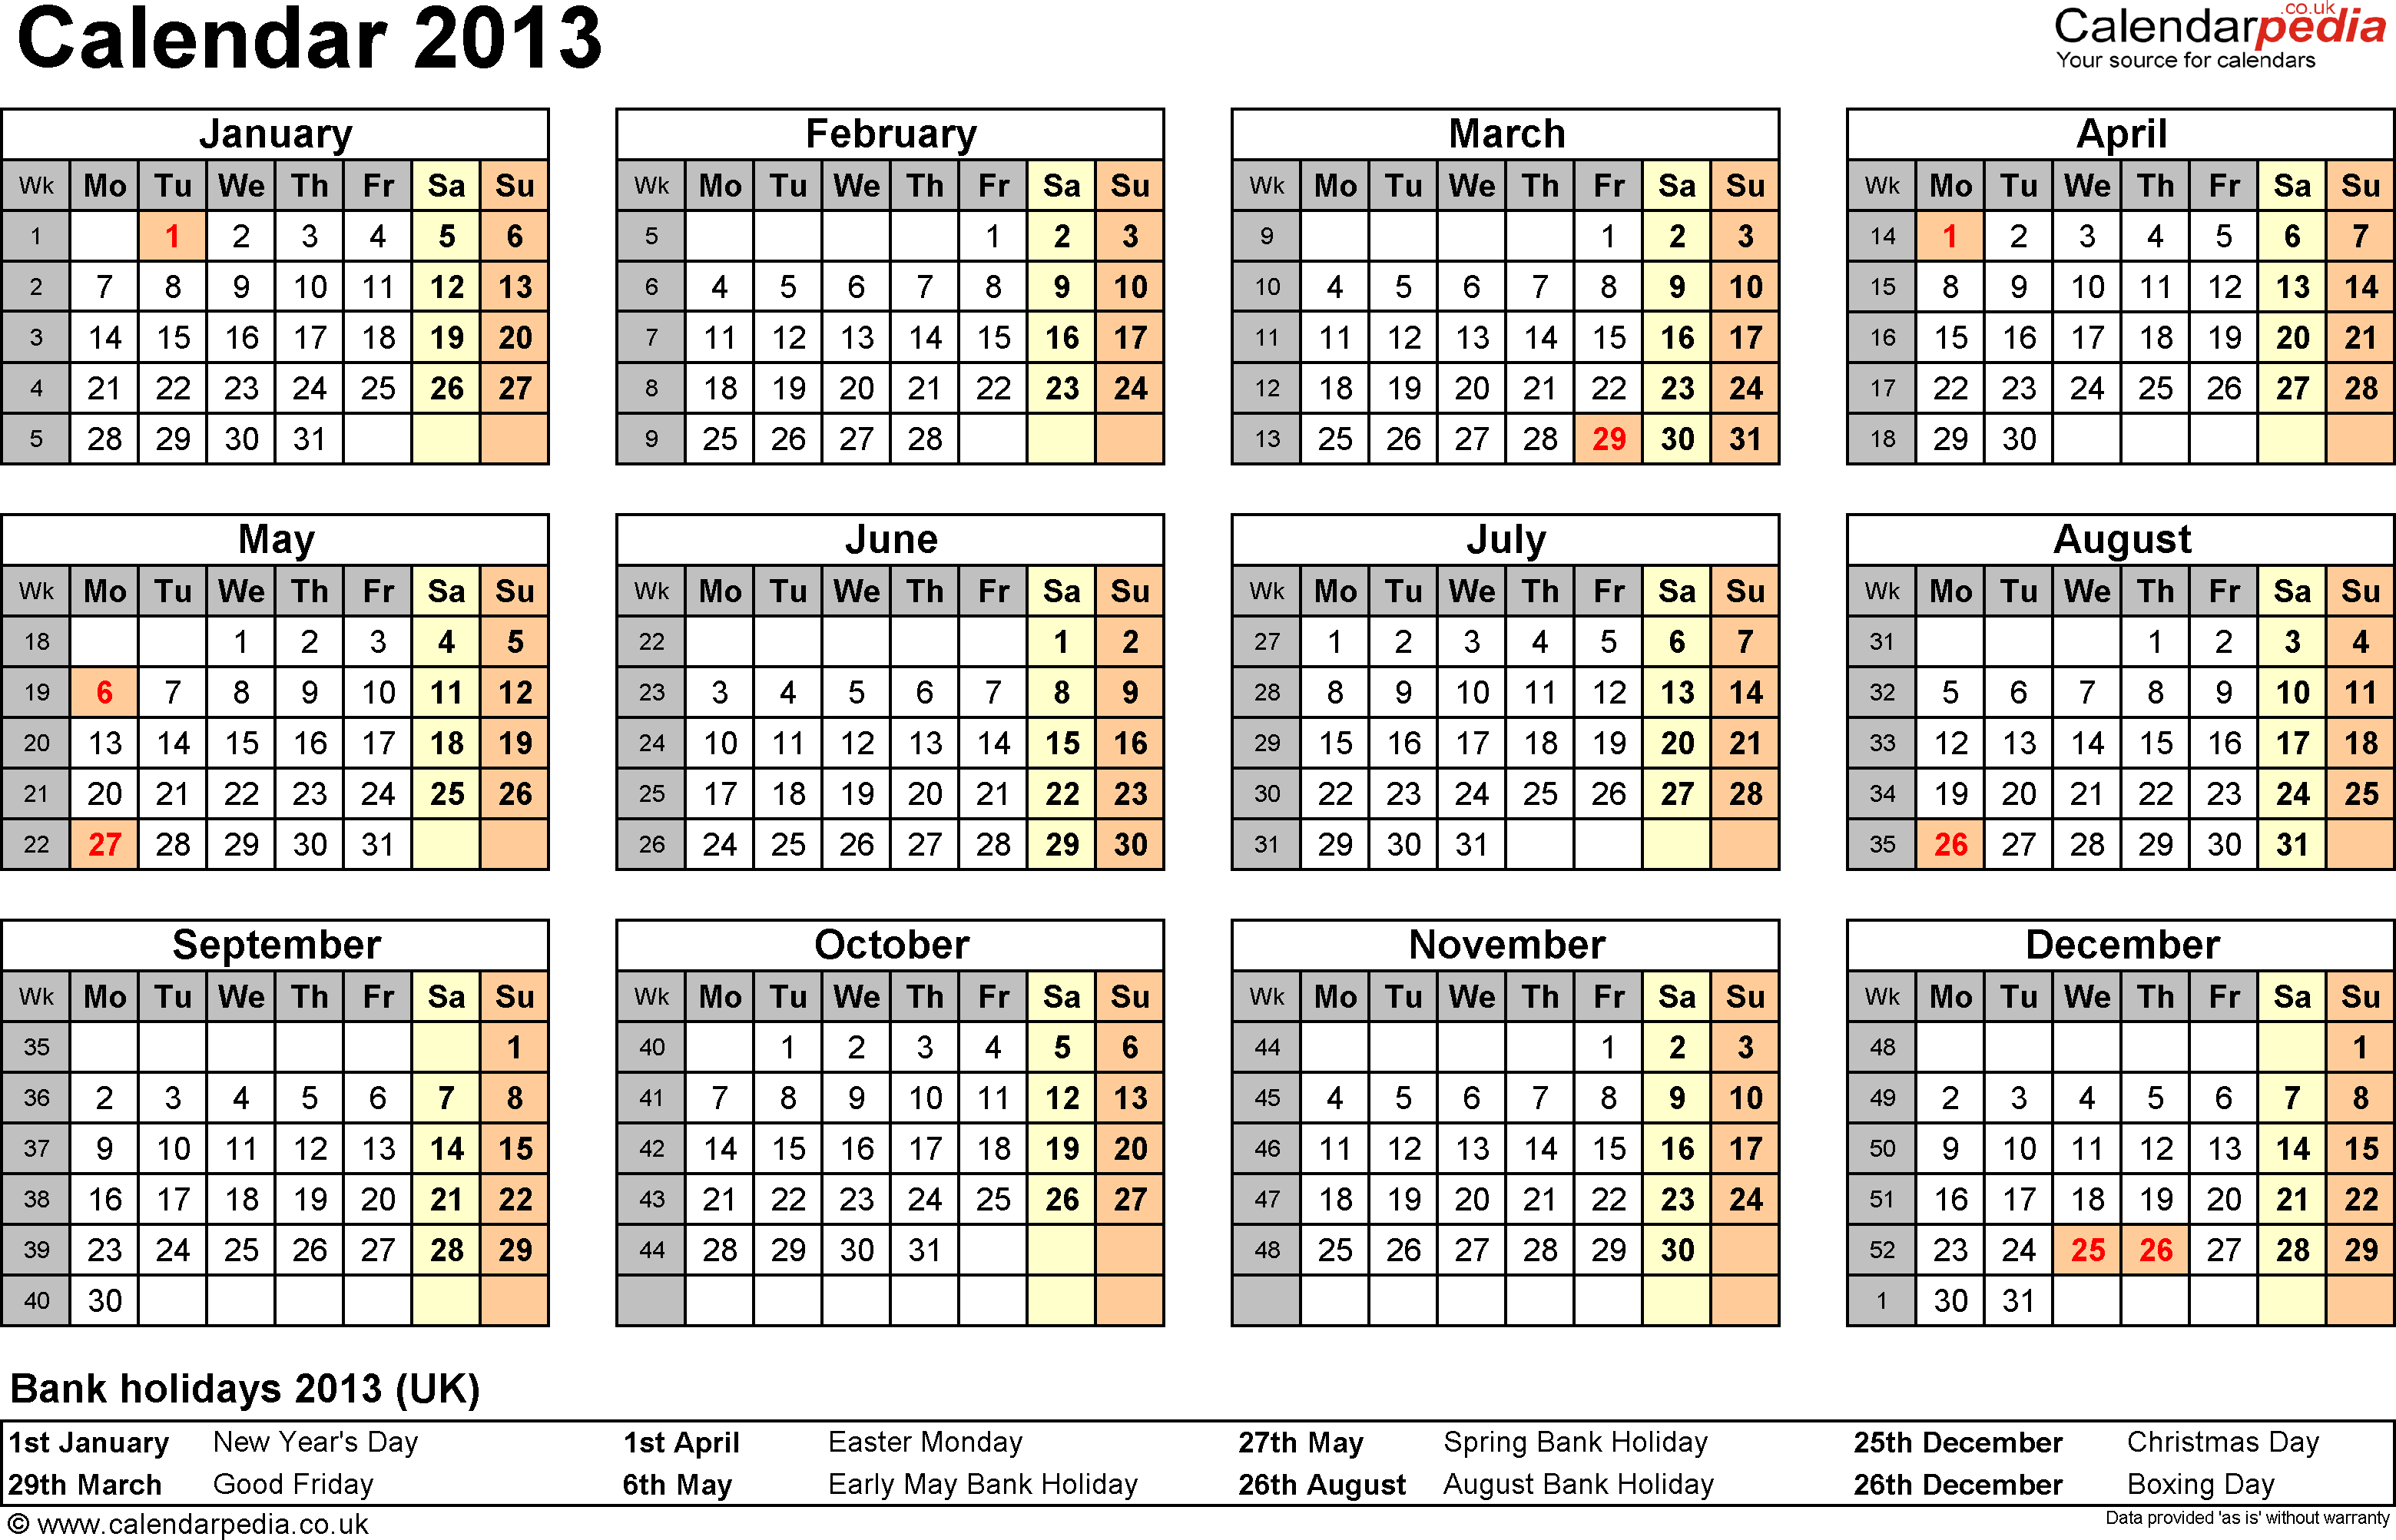 Template 7: Yearly calendar 2013 as Word template, year overview, 1 page